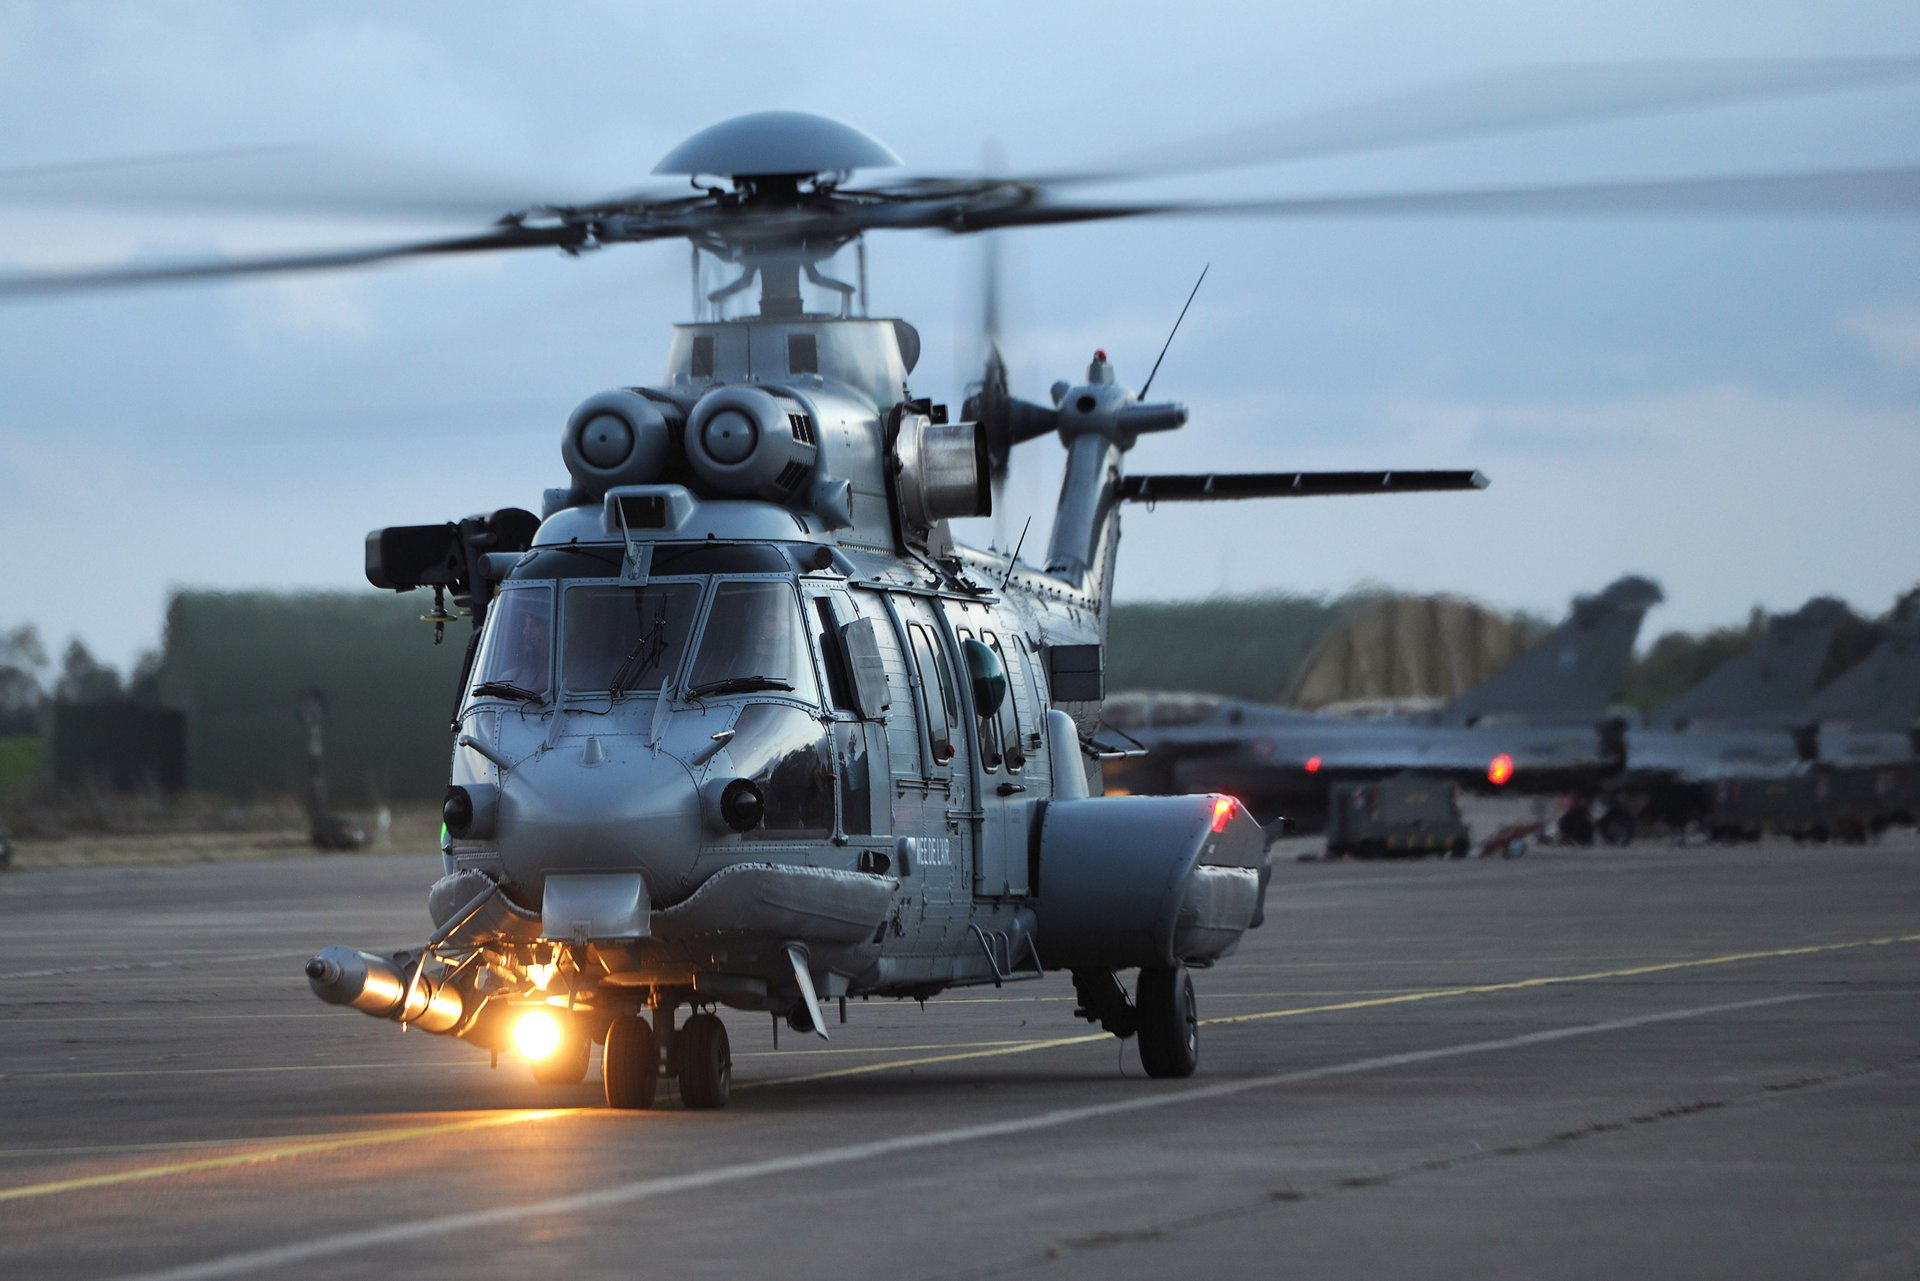 The French Minister of Armed Forces, Florence Parly, has announced that the Armament General Directorate (DGA) has signed an order to purchase eight additional H225Ms.